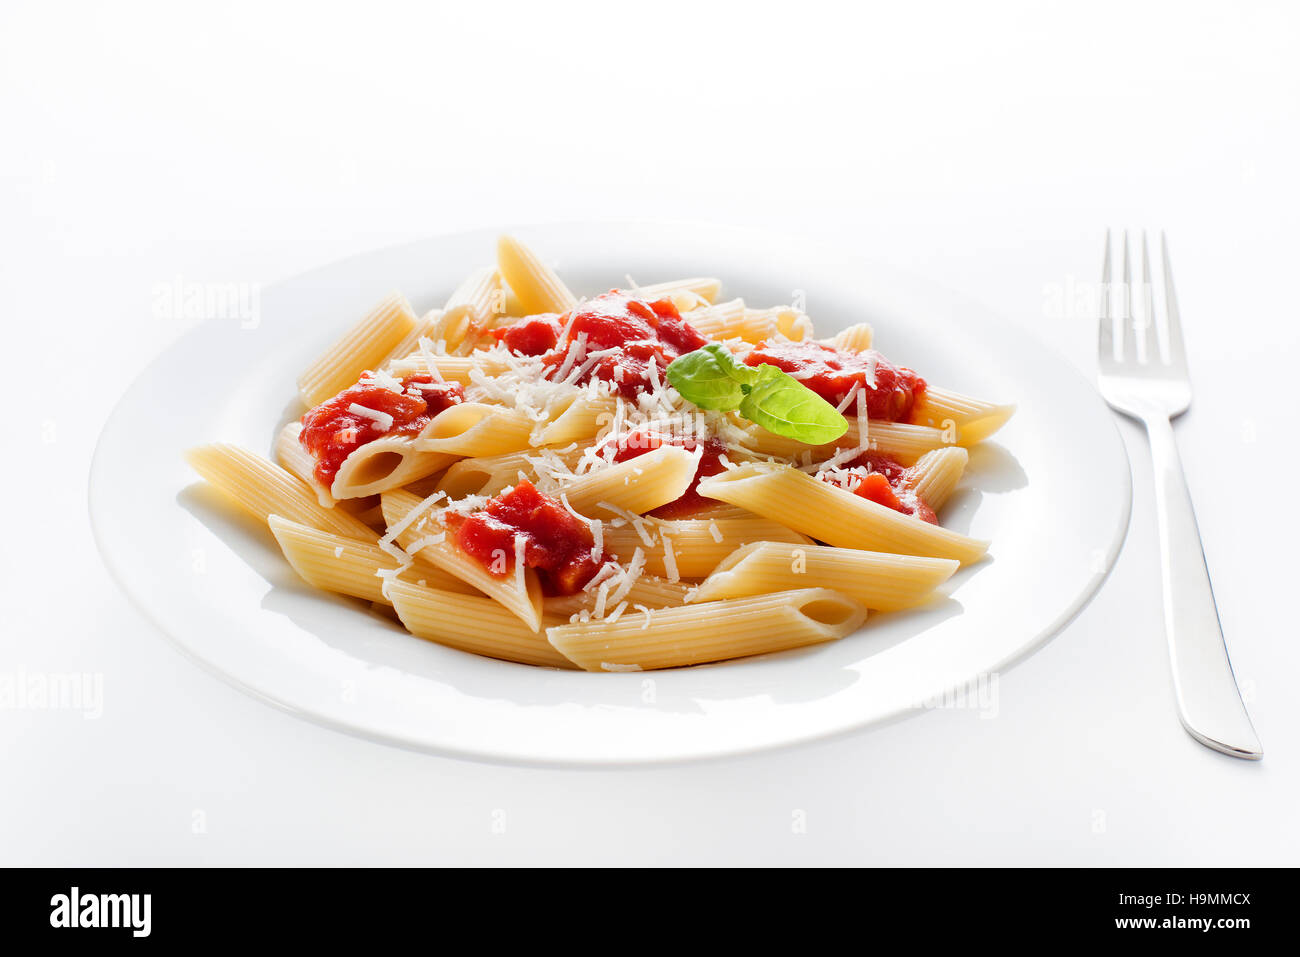 Plate of penne pasta with tomato sauce and parmesan cheese - Stock Image